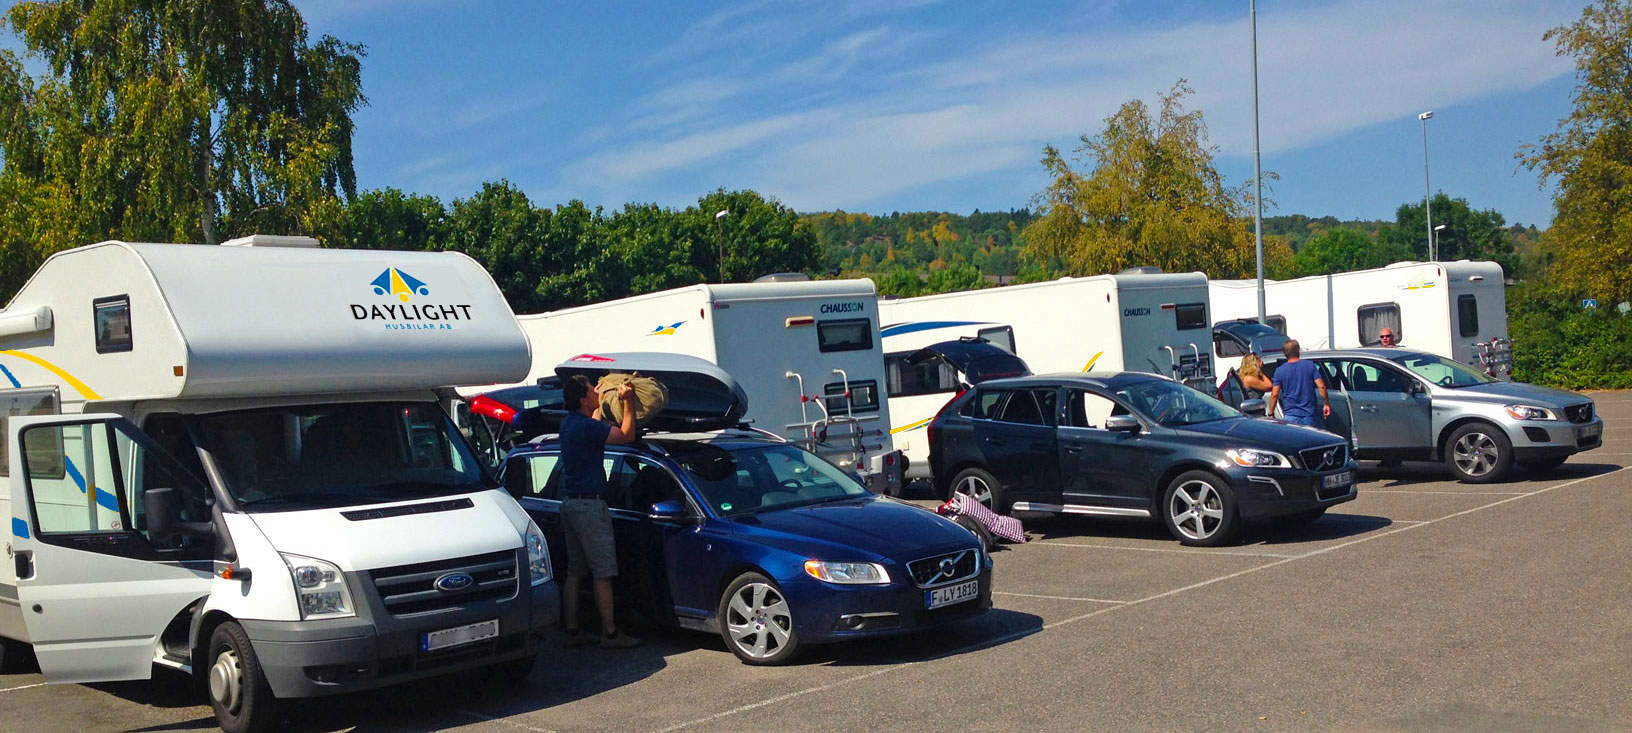 Many customers arrive by car - then it Is convenient to load/unload next to the motorhome